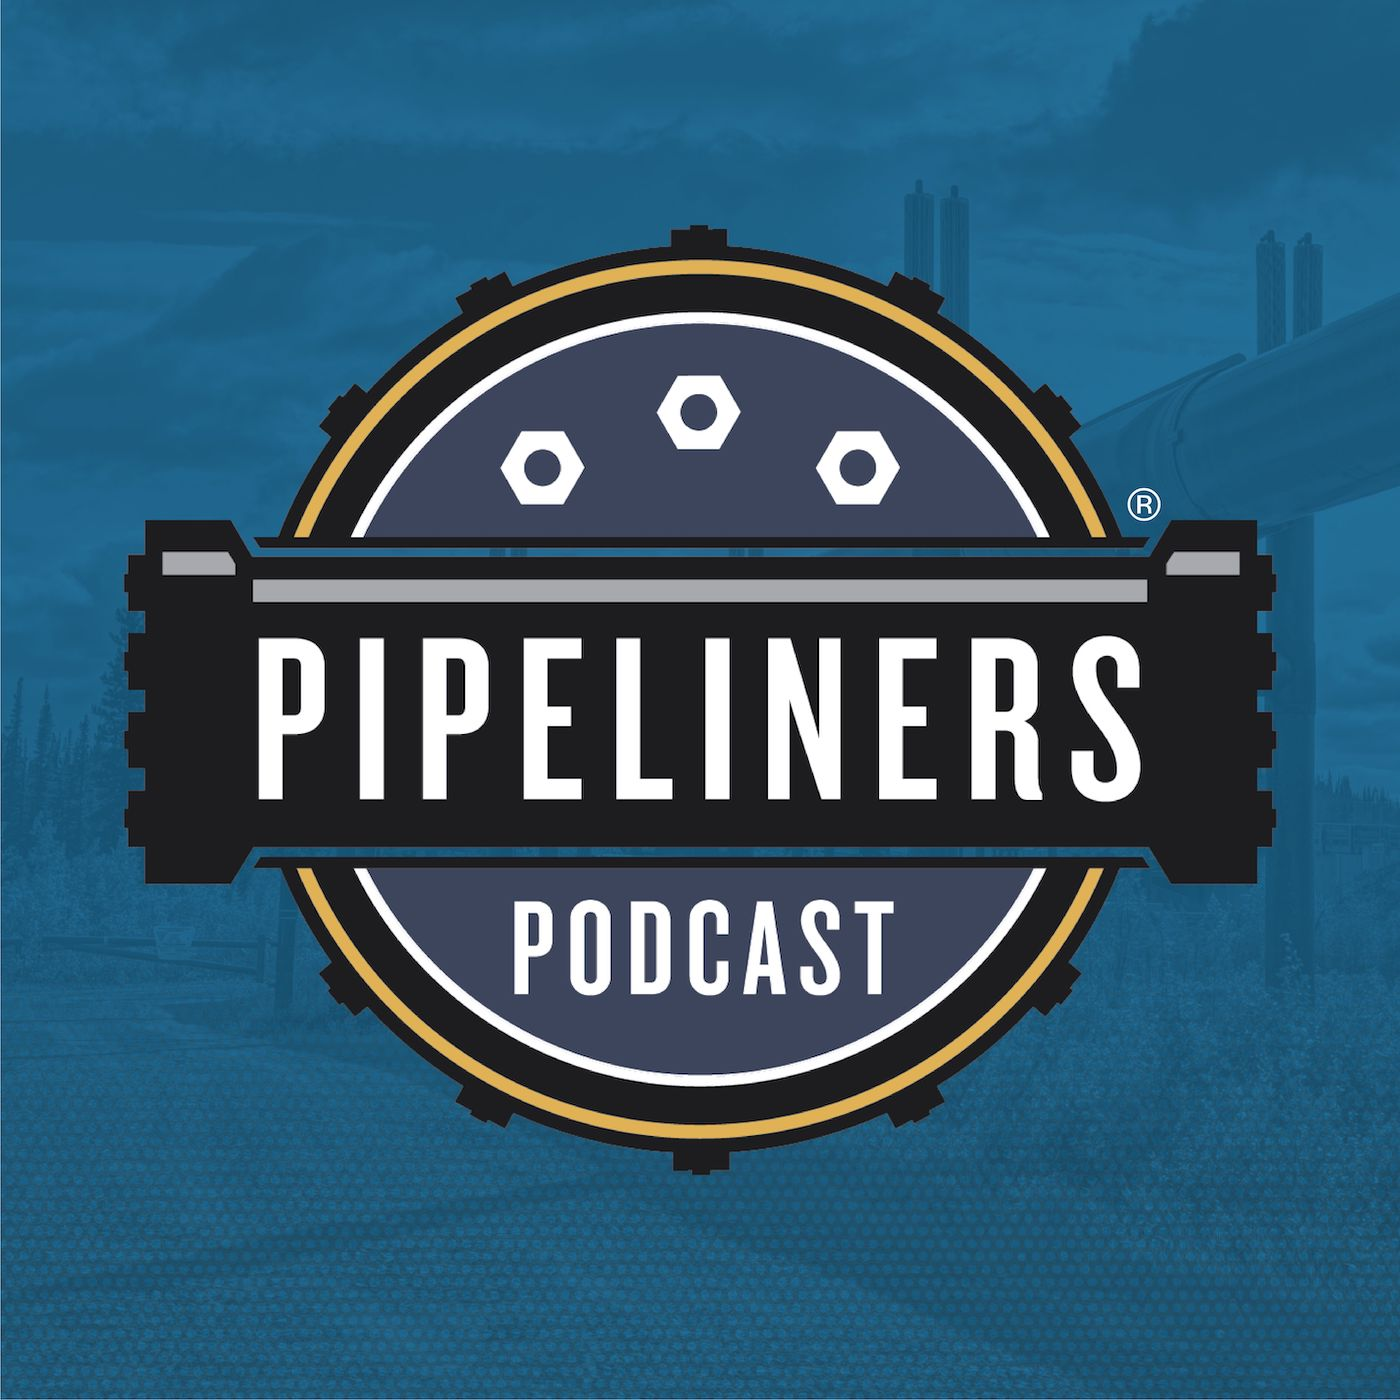 Pipeliners Podcast show art